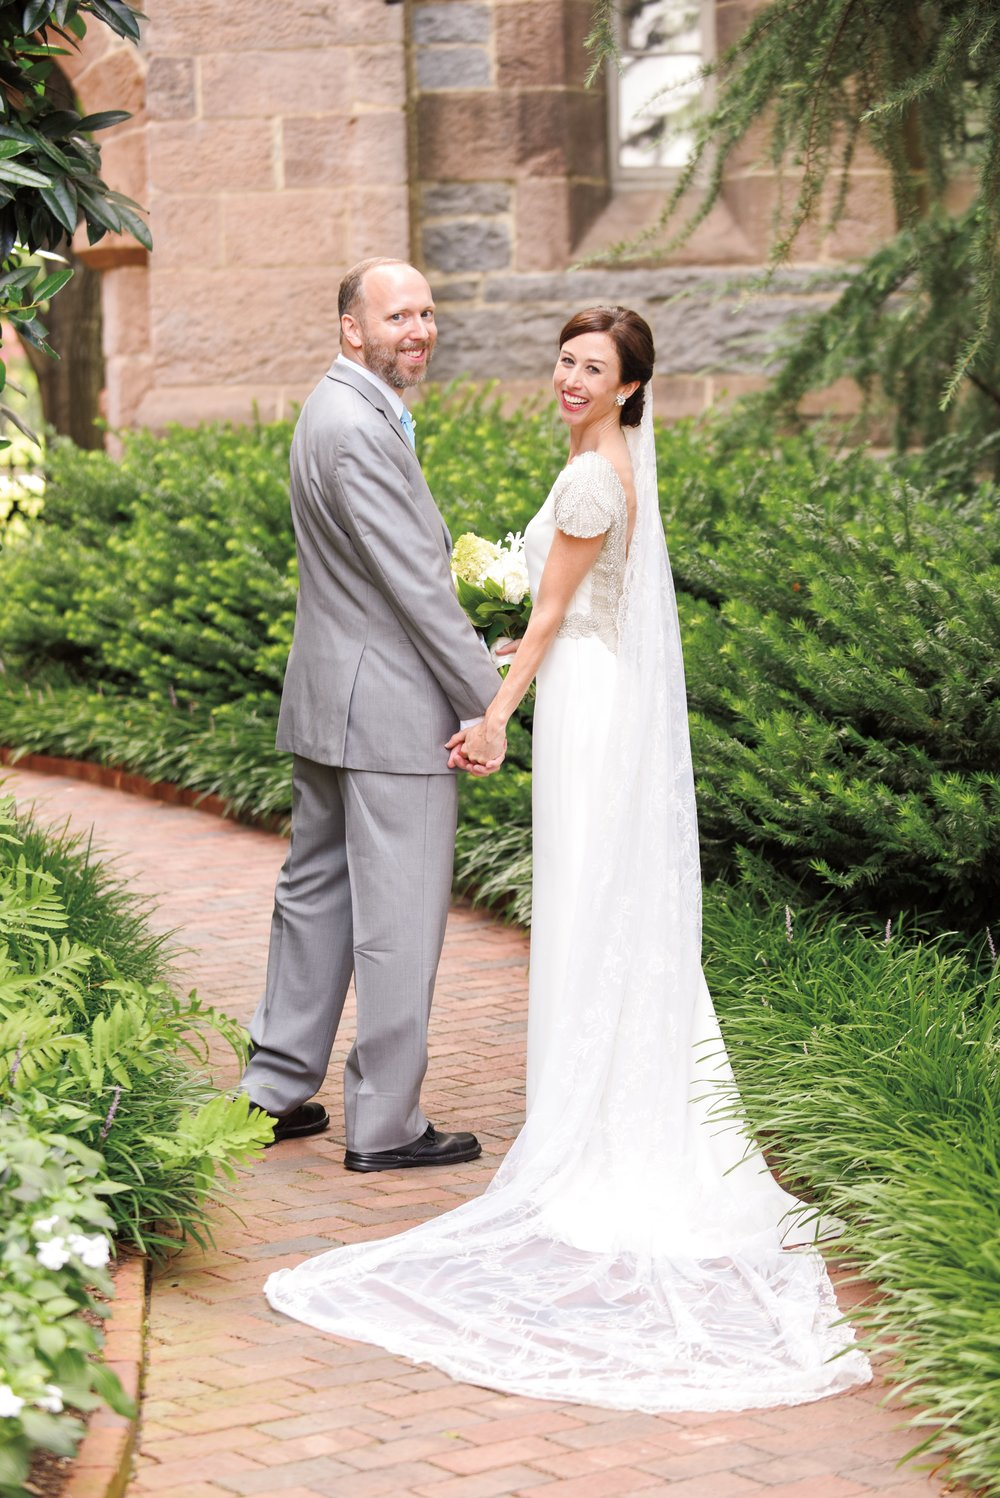 Lindsay Purrington '96 married Mike O'Hara in her hometown of Raleigh, N.C.